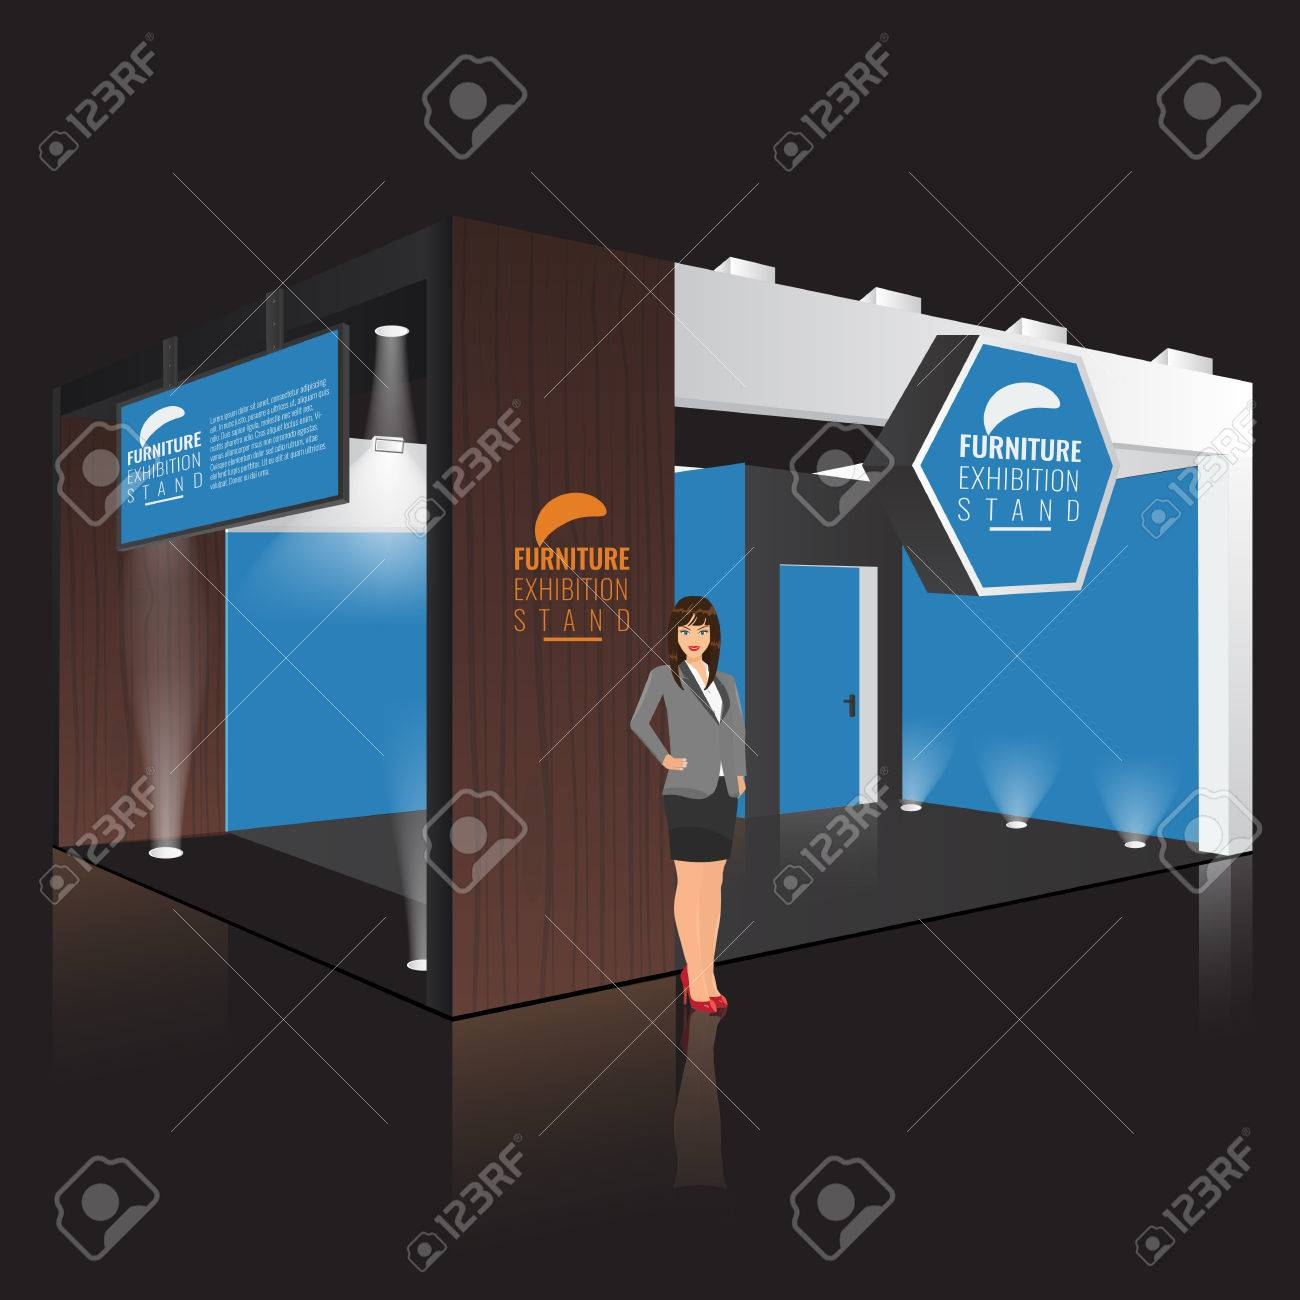 Exhibition Stand Lighting Xl : Creative exhibition stand display design with info board. booth